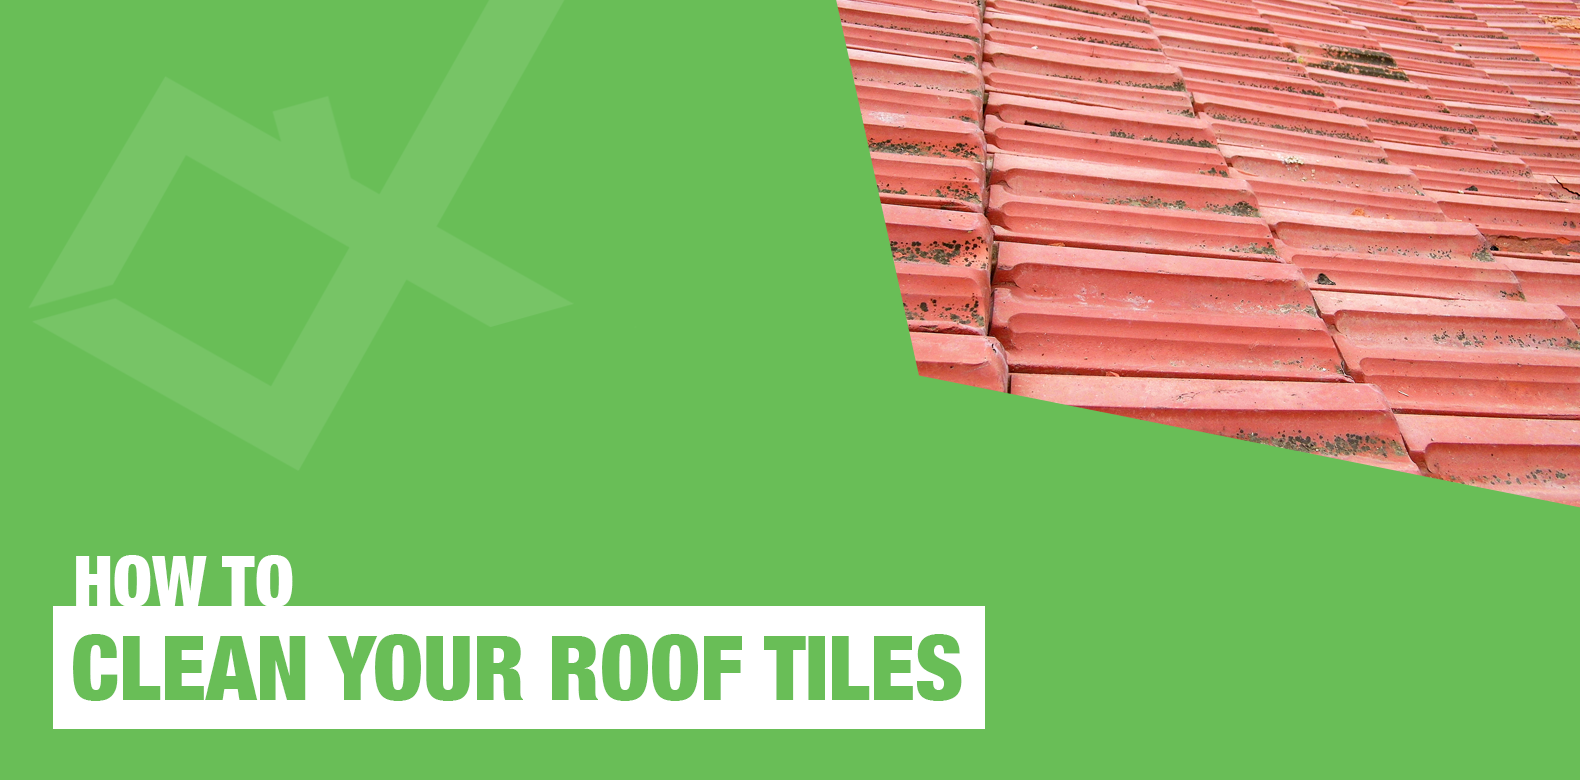 How to Clean Roof Tiles | Roofing Megastore